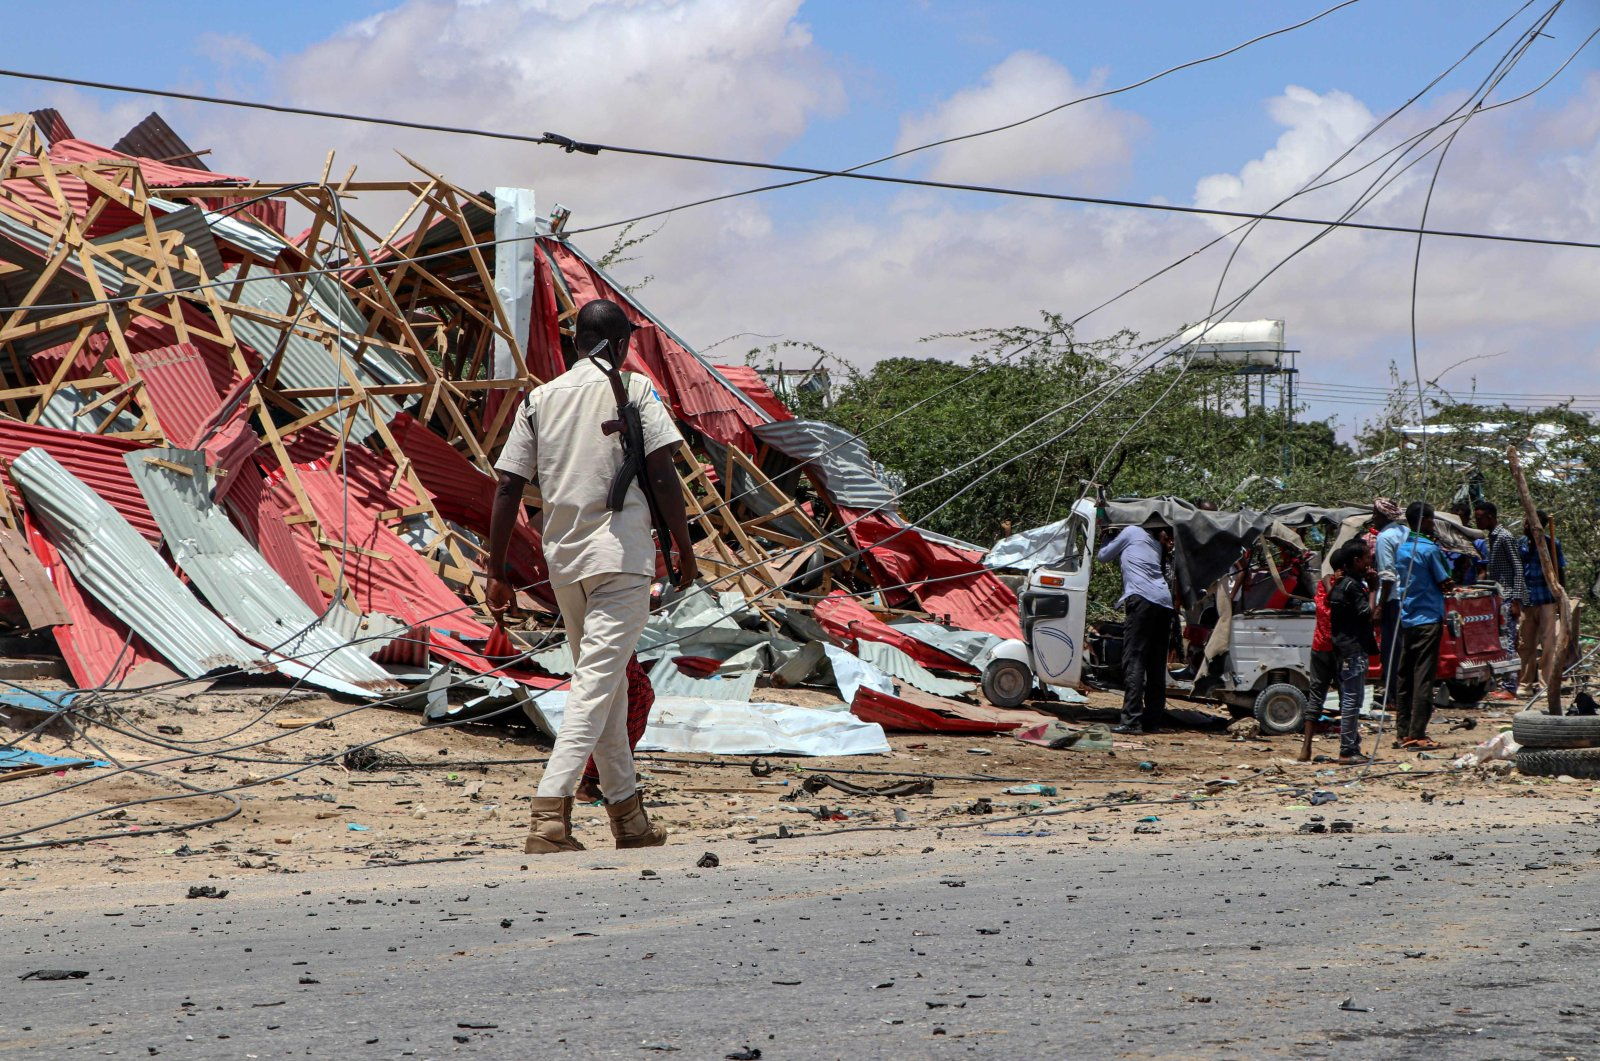 A Somali police officer patrols (L) as bystanders gather at the site of a suicide car bomb explosion which targeted a European Union vehicle convoy in Mogadishu, Somalia, on Sept. 30, 2019. (AFP Photo)